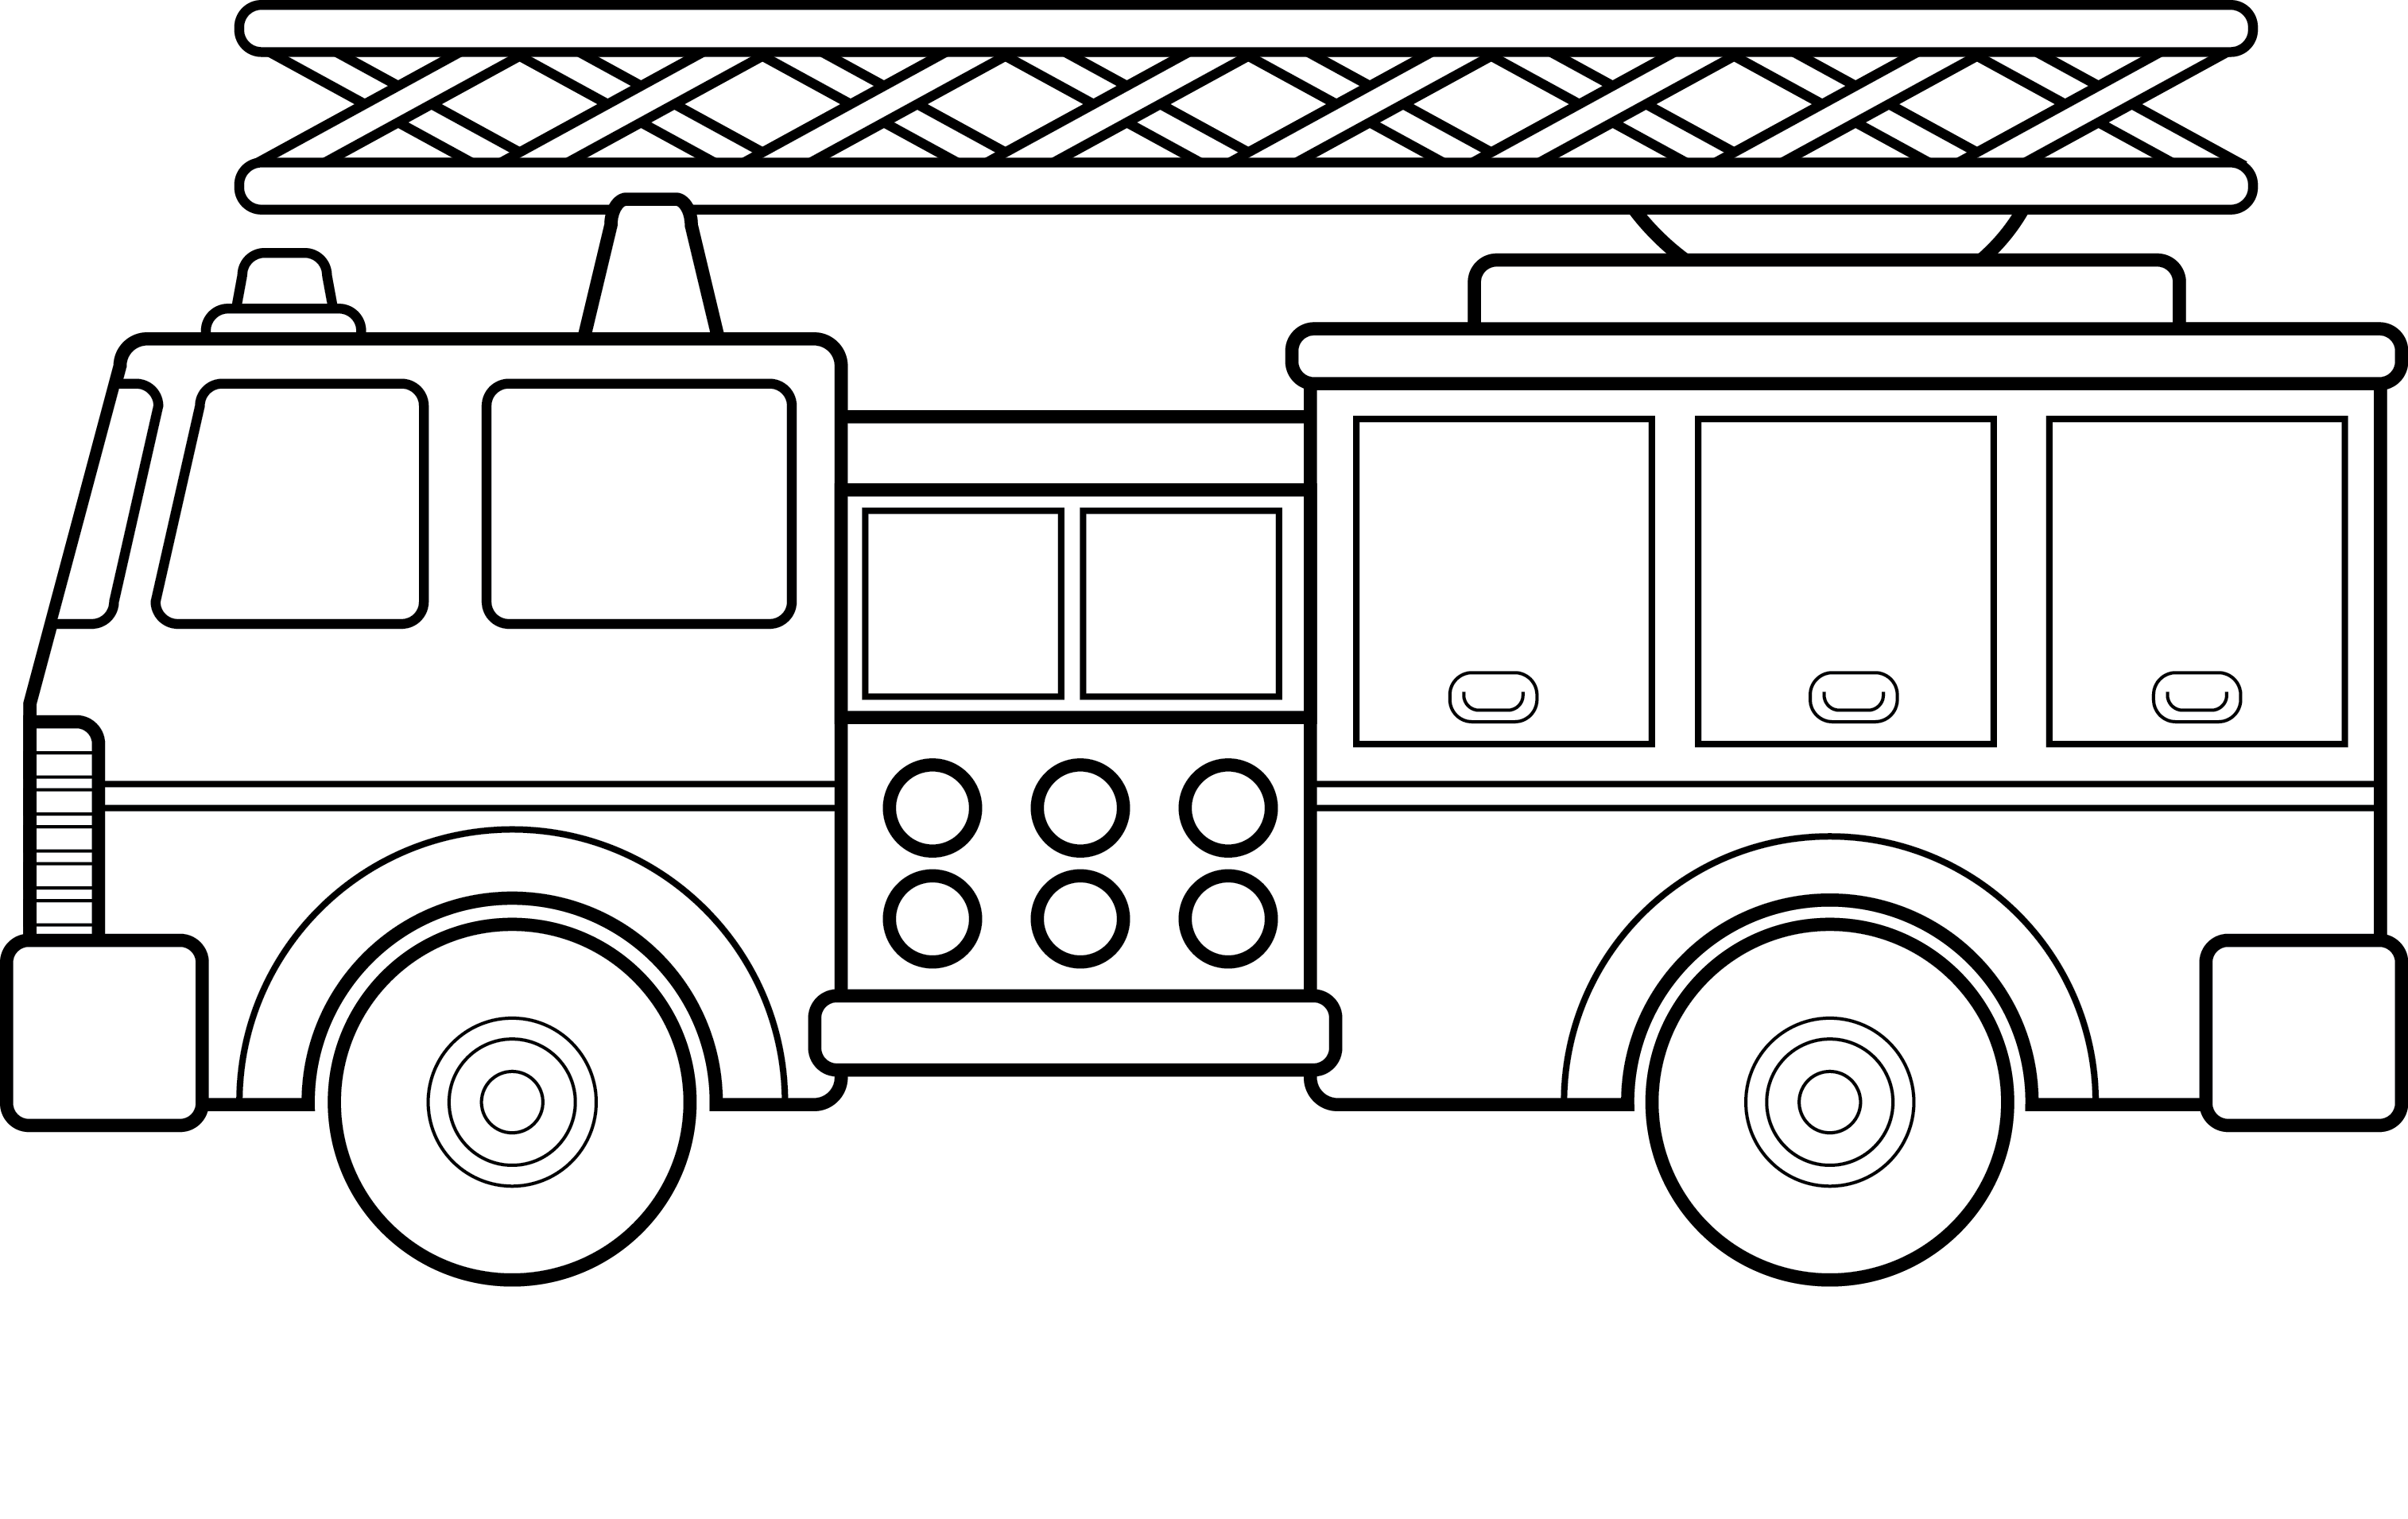 firetruck color page free printable fire truck coloring pages for kids color firetruck page